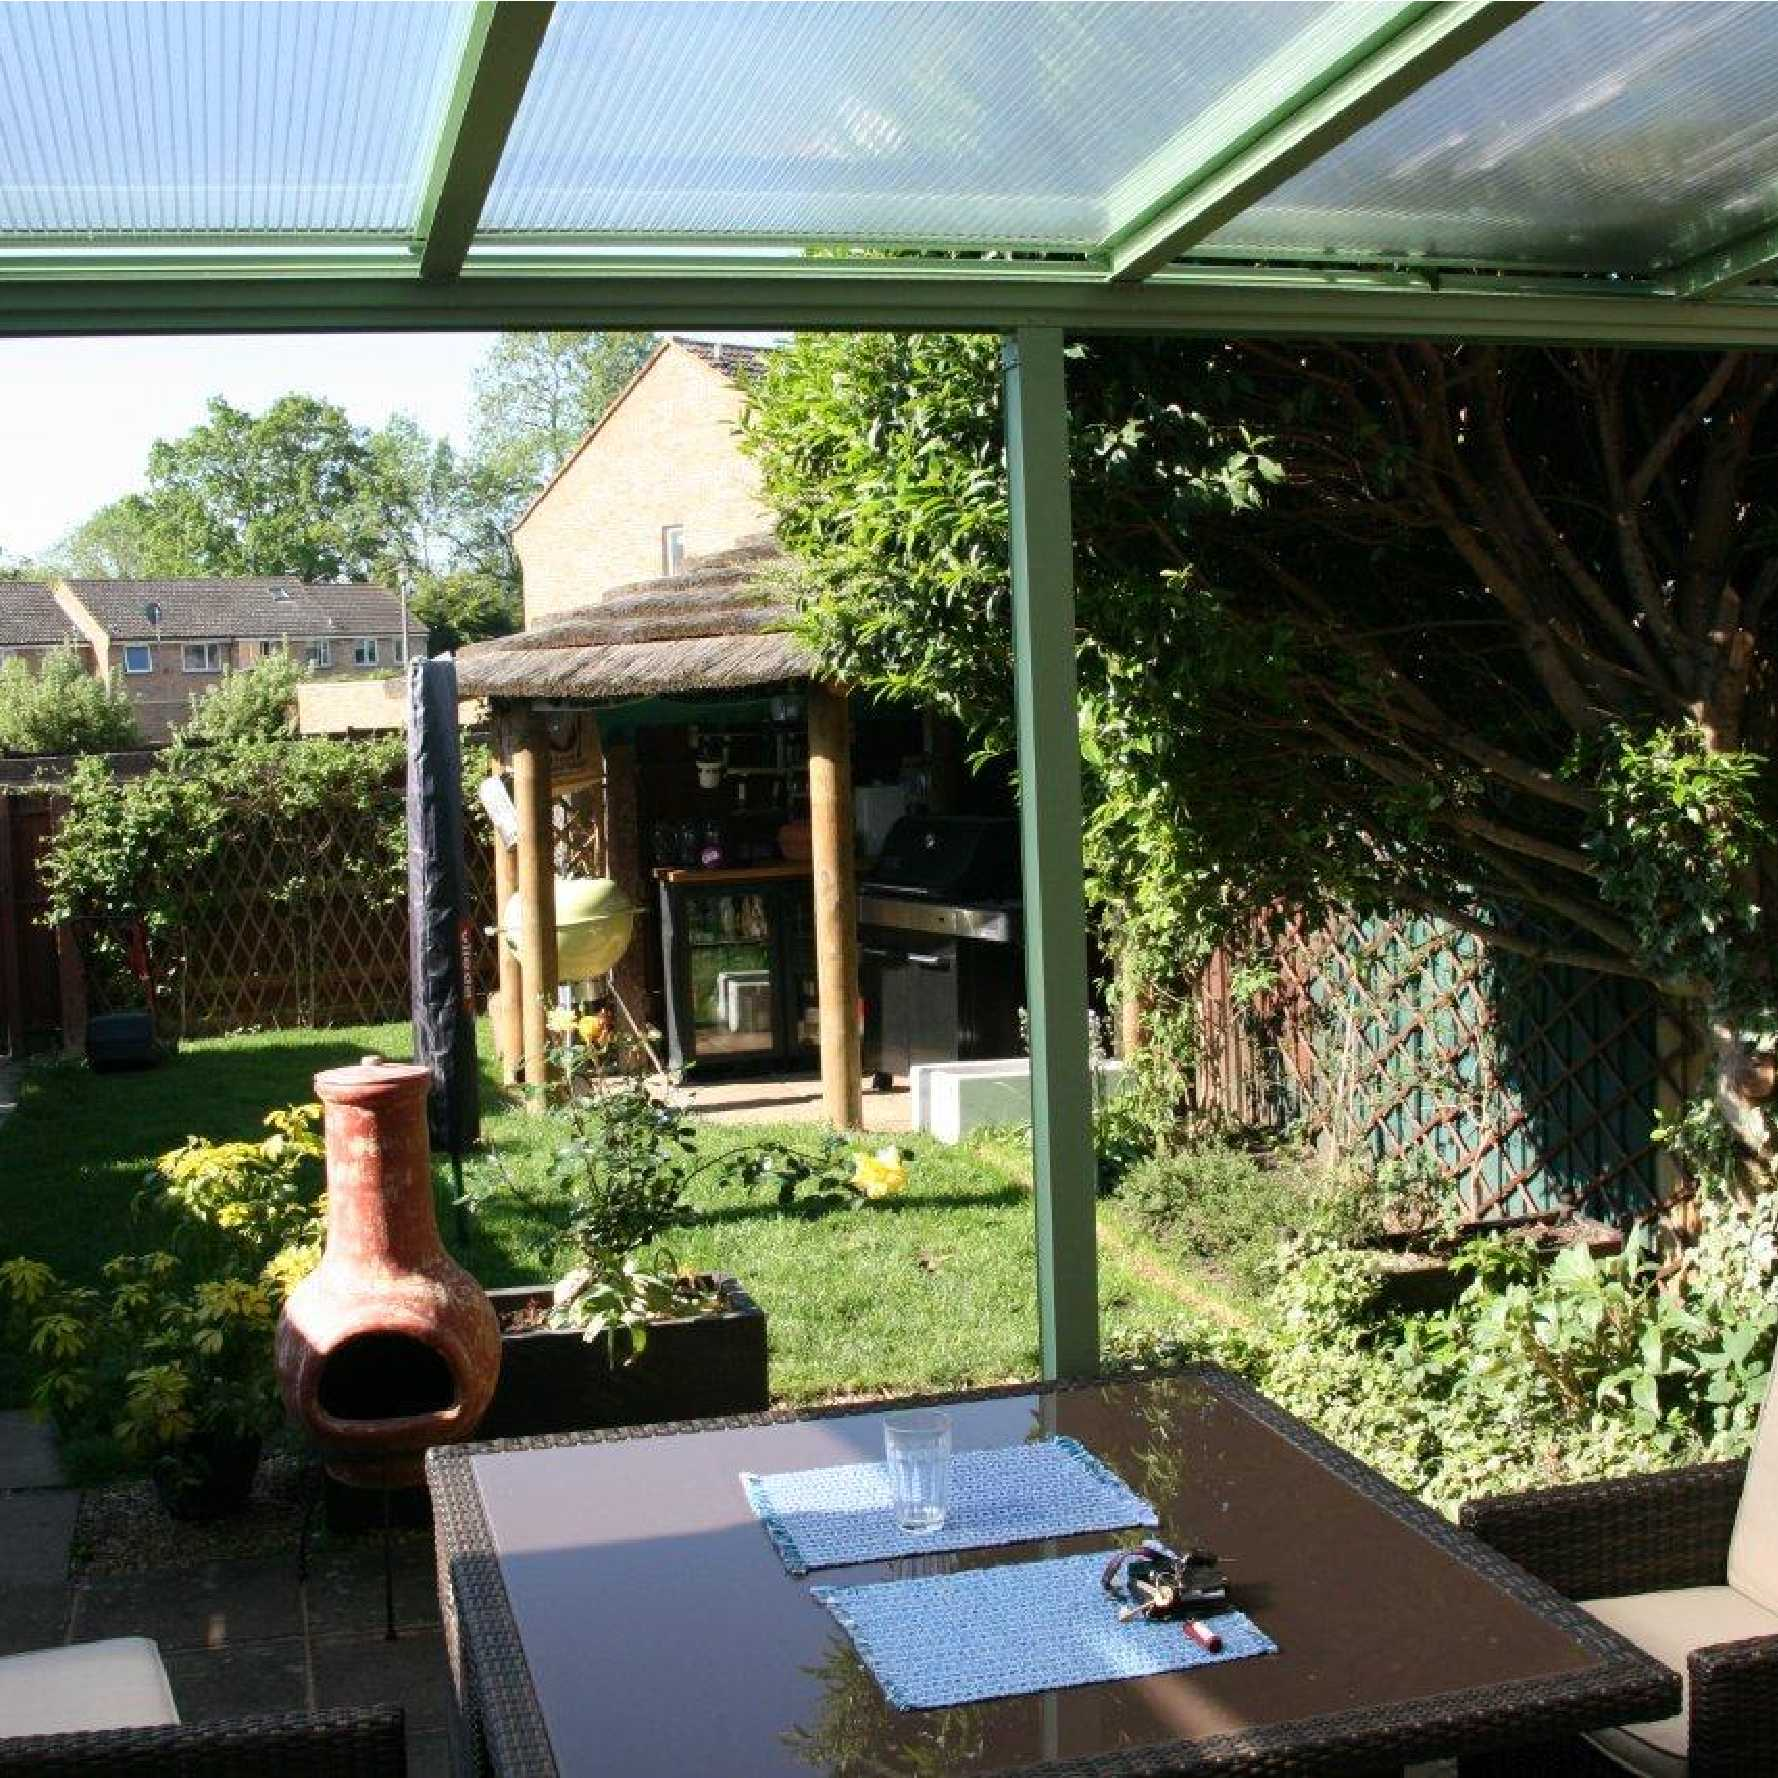 Affordable Omega Smart Lean-To Canopy with 16mm Polycarbonate Glazing - 11.6m (W) x 1.5m (P), (5) Supporting Posts